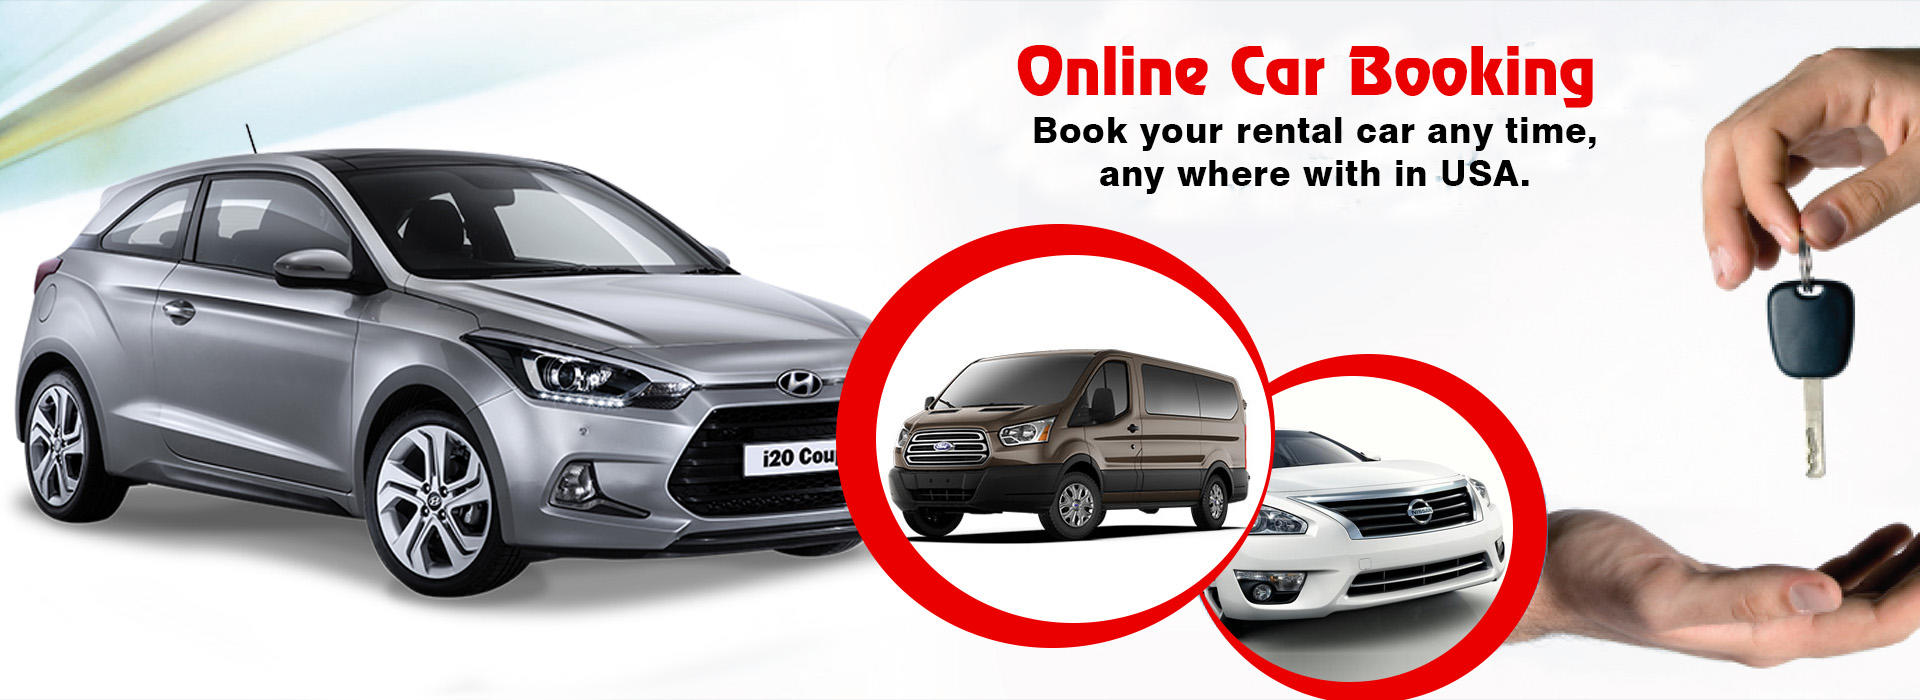 Rent A Car While Car Is Being Repaired